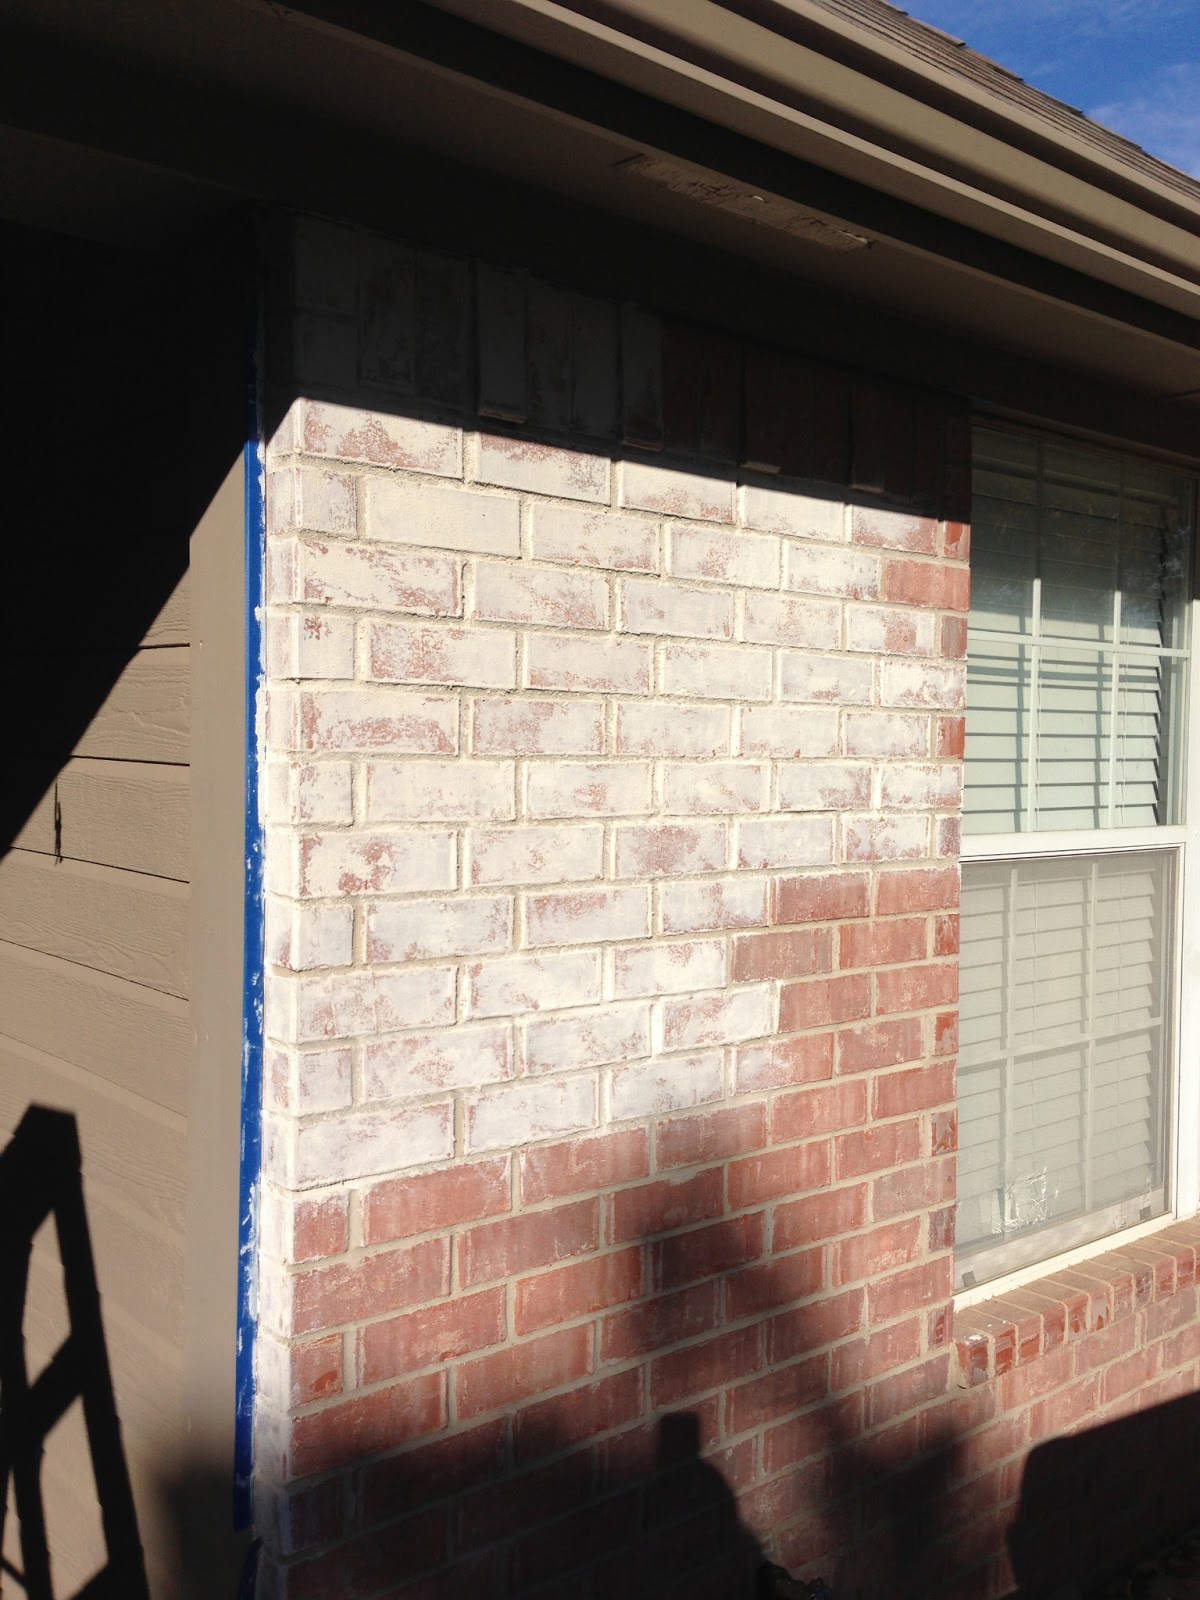 The white washed brick project | Kinda Frenchy - DIY repurposing ...